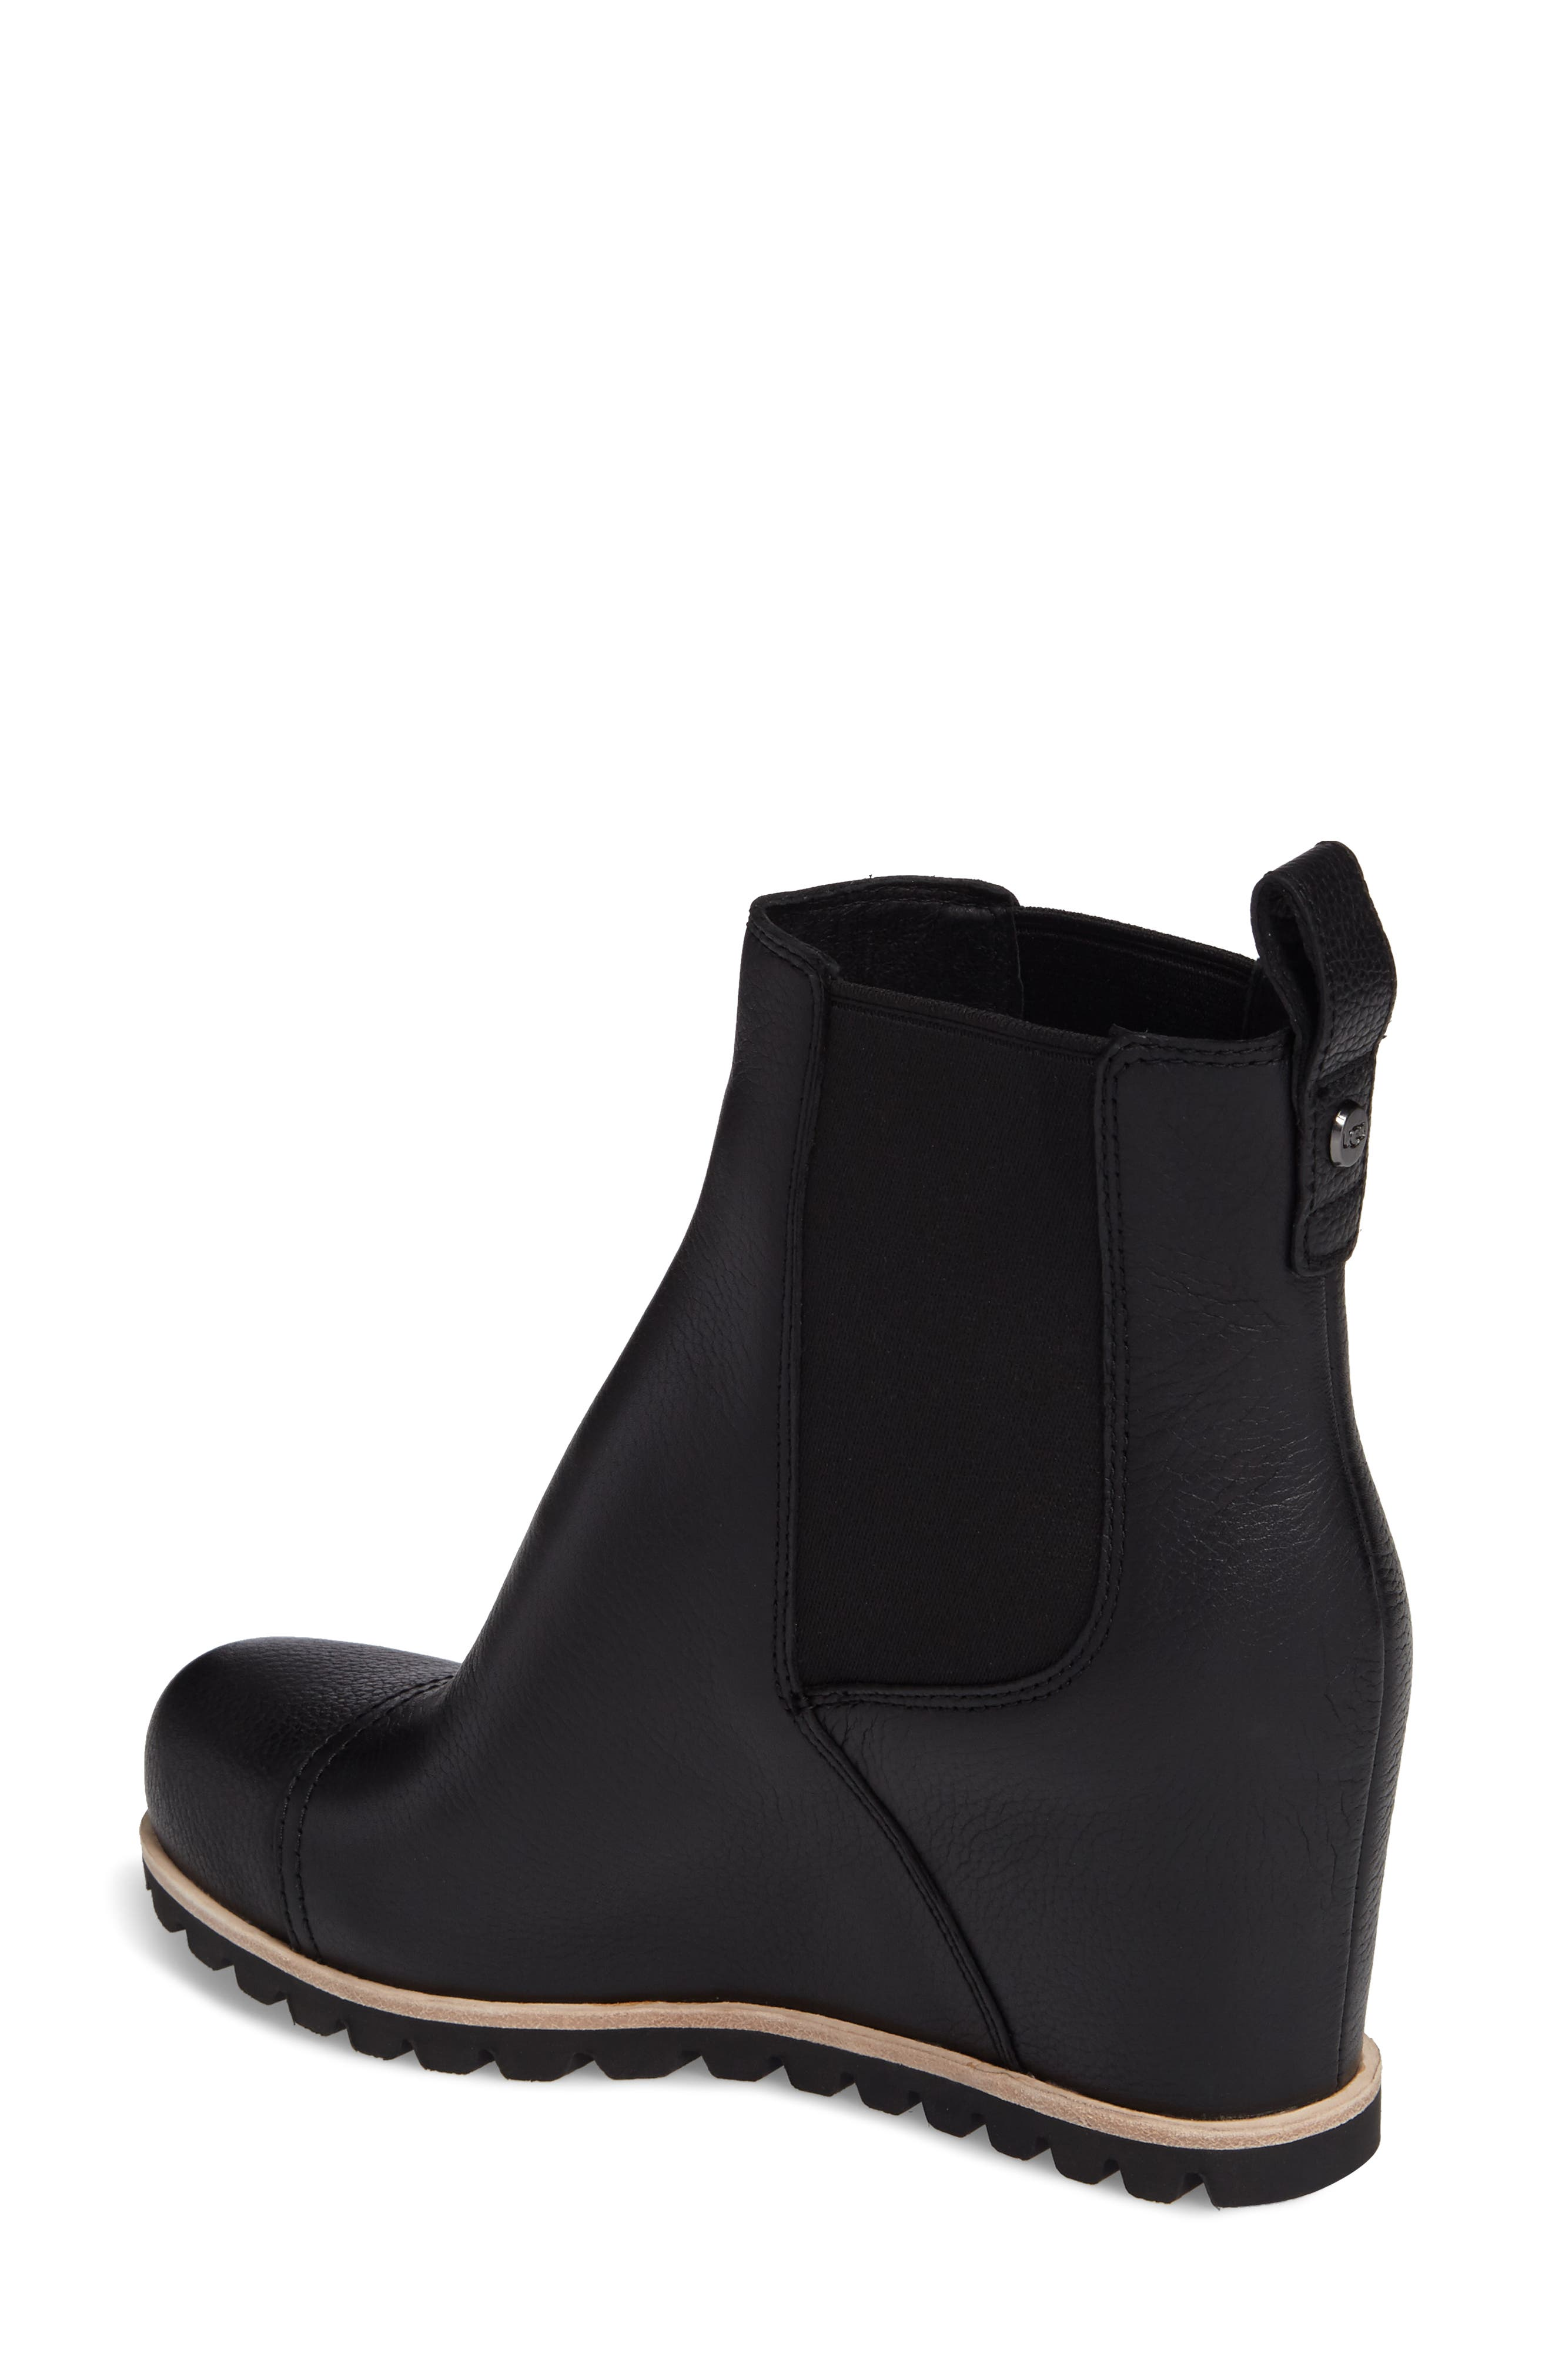 Pax Waterproof Wedge Boot,                             Alternate thumbnail 2, color,                             Black Leather